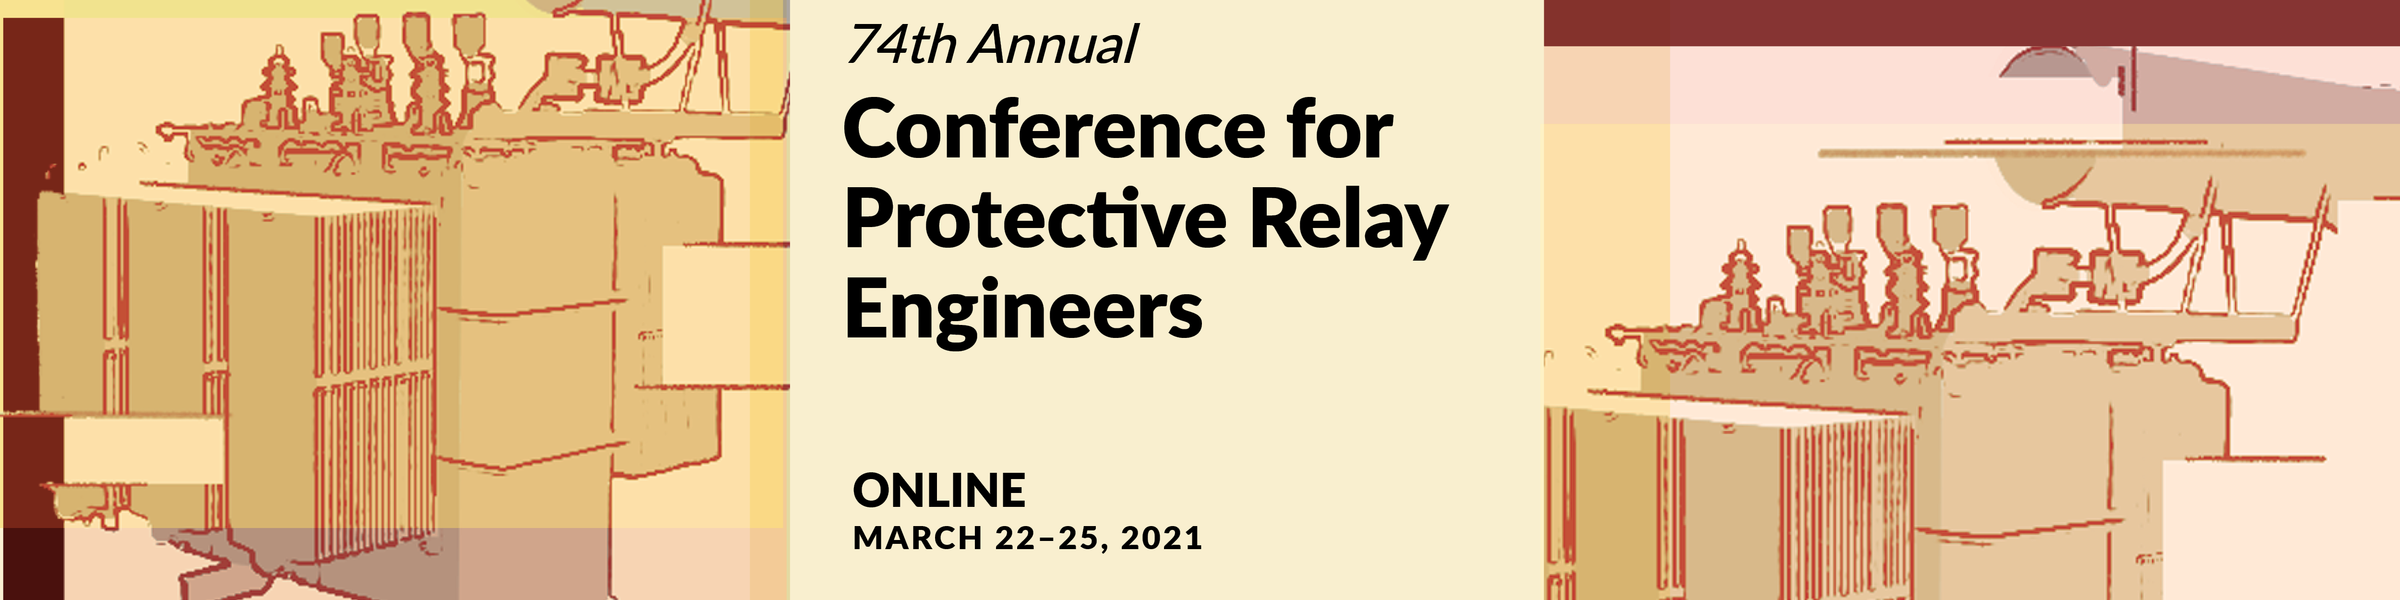 2020-2021 Relay Conference Exhibitor Reservation